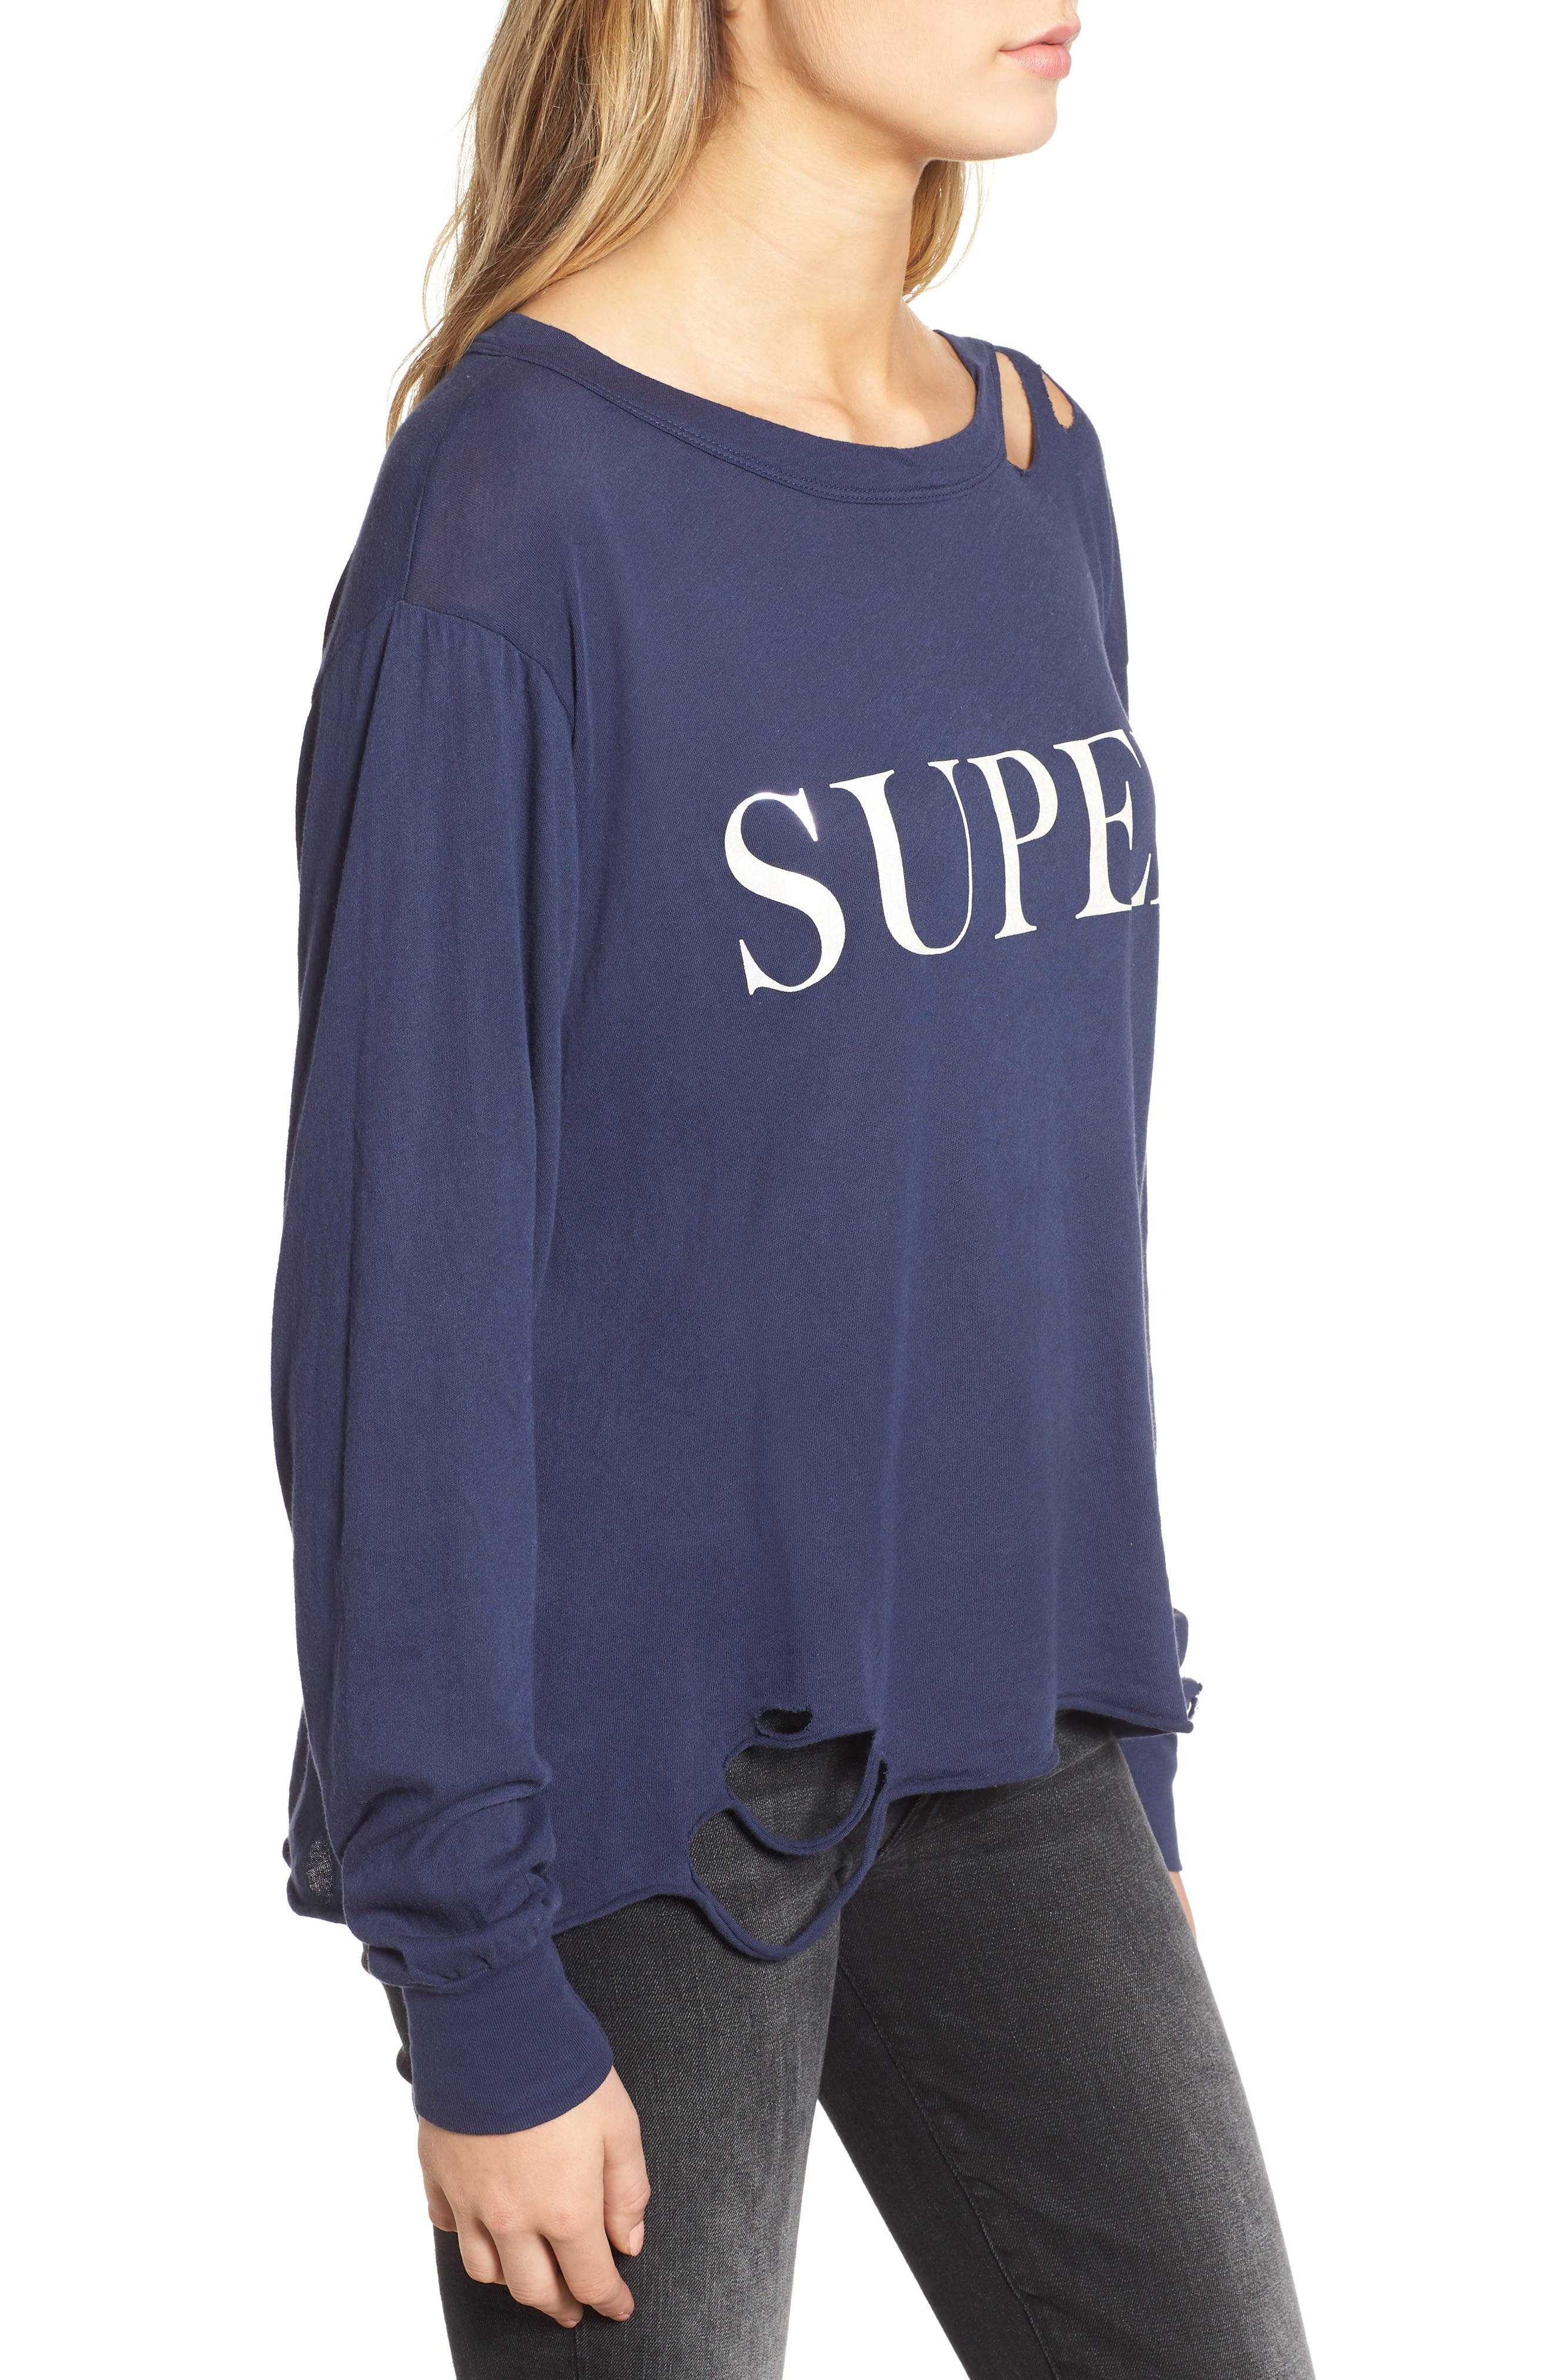 Stellar - Super Ripped Graphic Tee,                             Alternate thumbnail 3, color,                             OXFORD